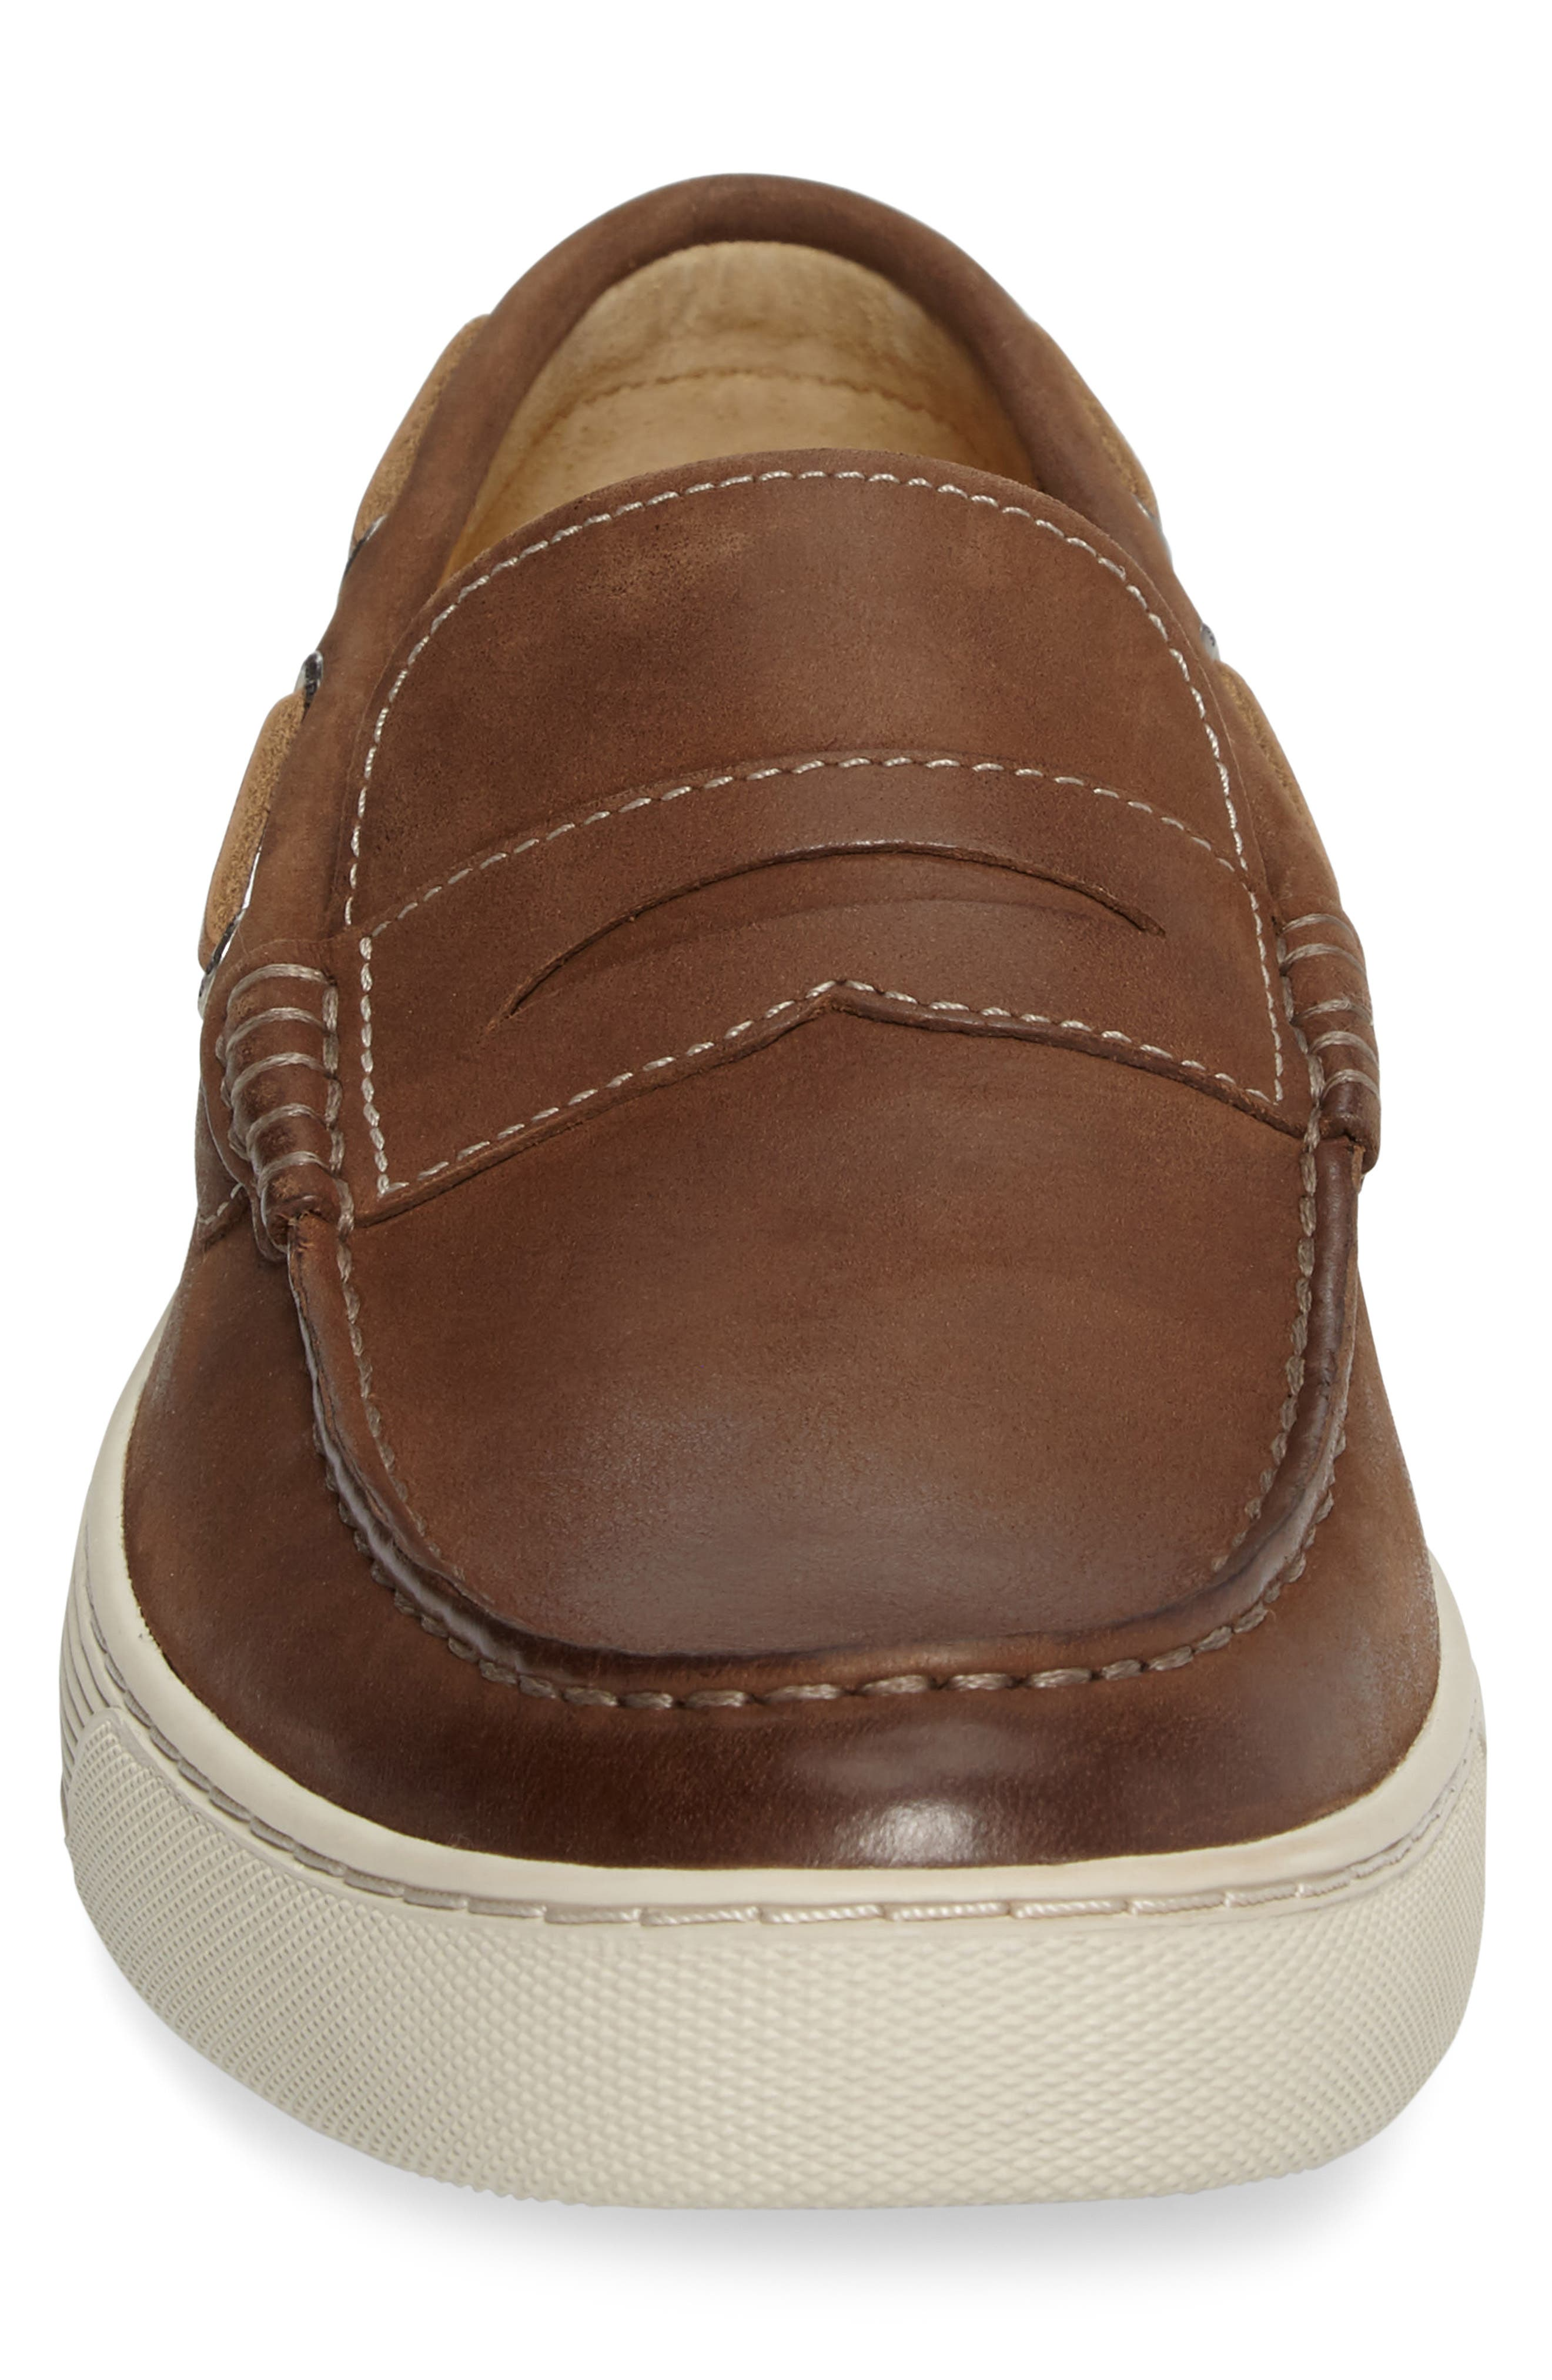 Gold Cup Penny Loafer,                             Alternate thumbnail 8, color,